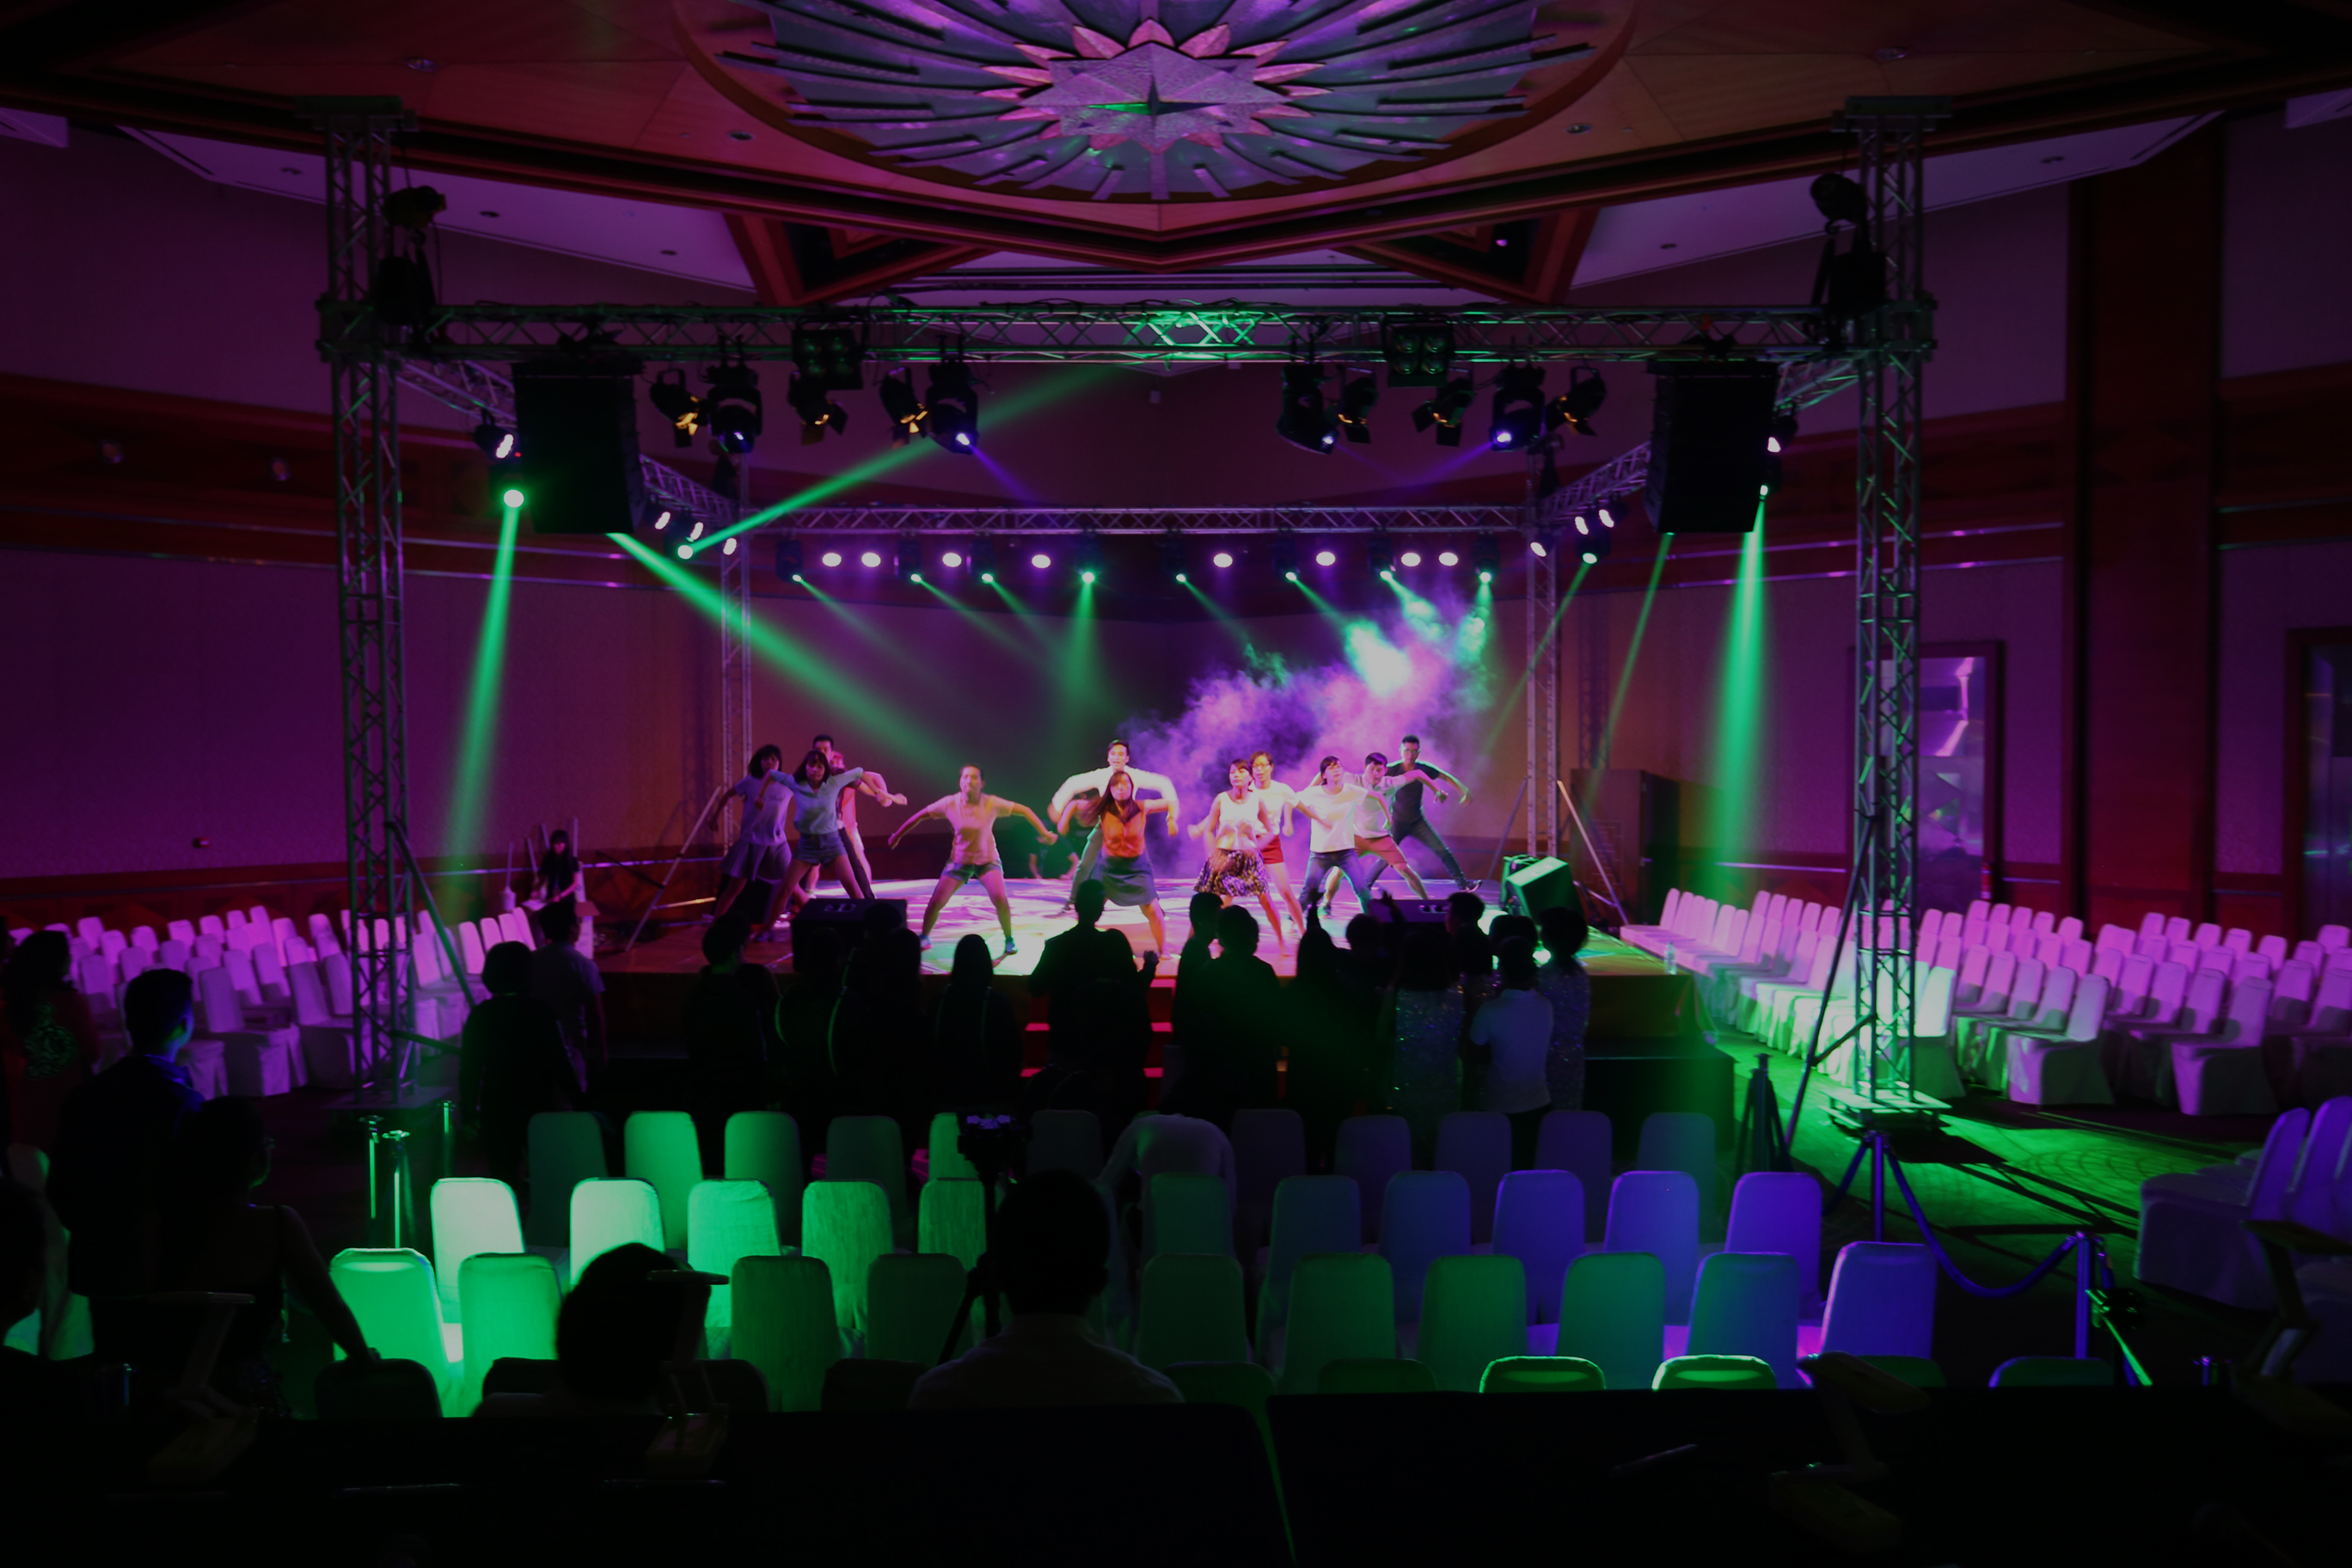 Truss and Lighting System